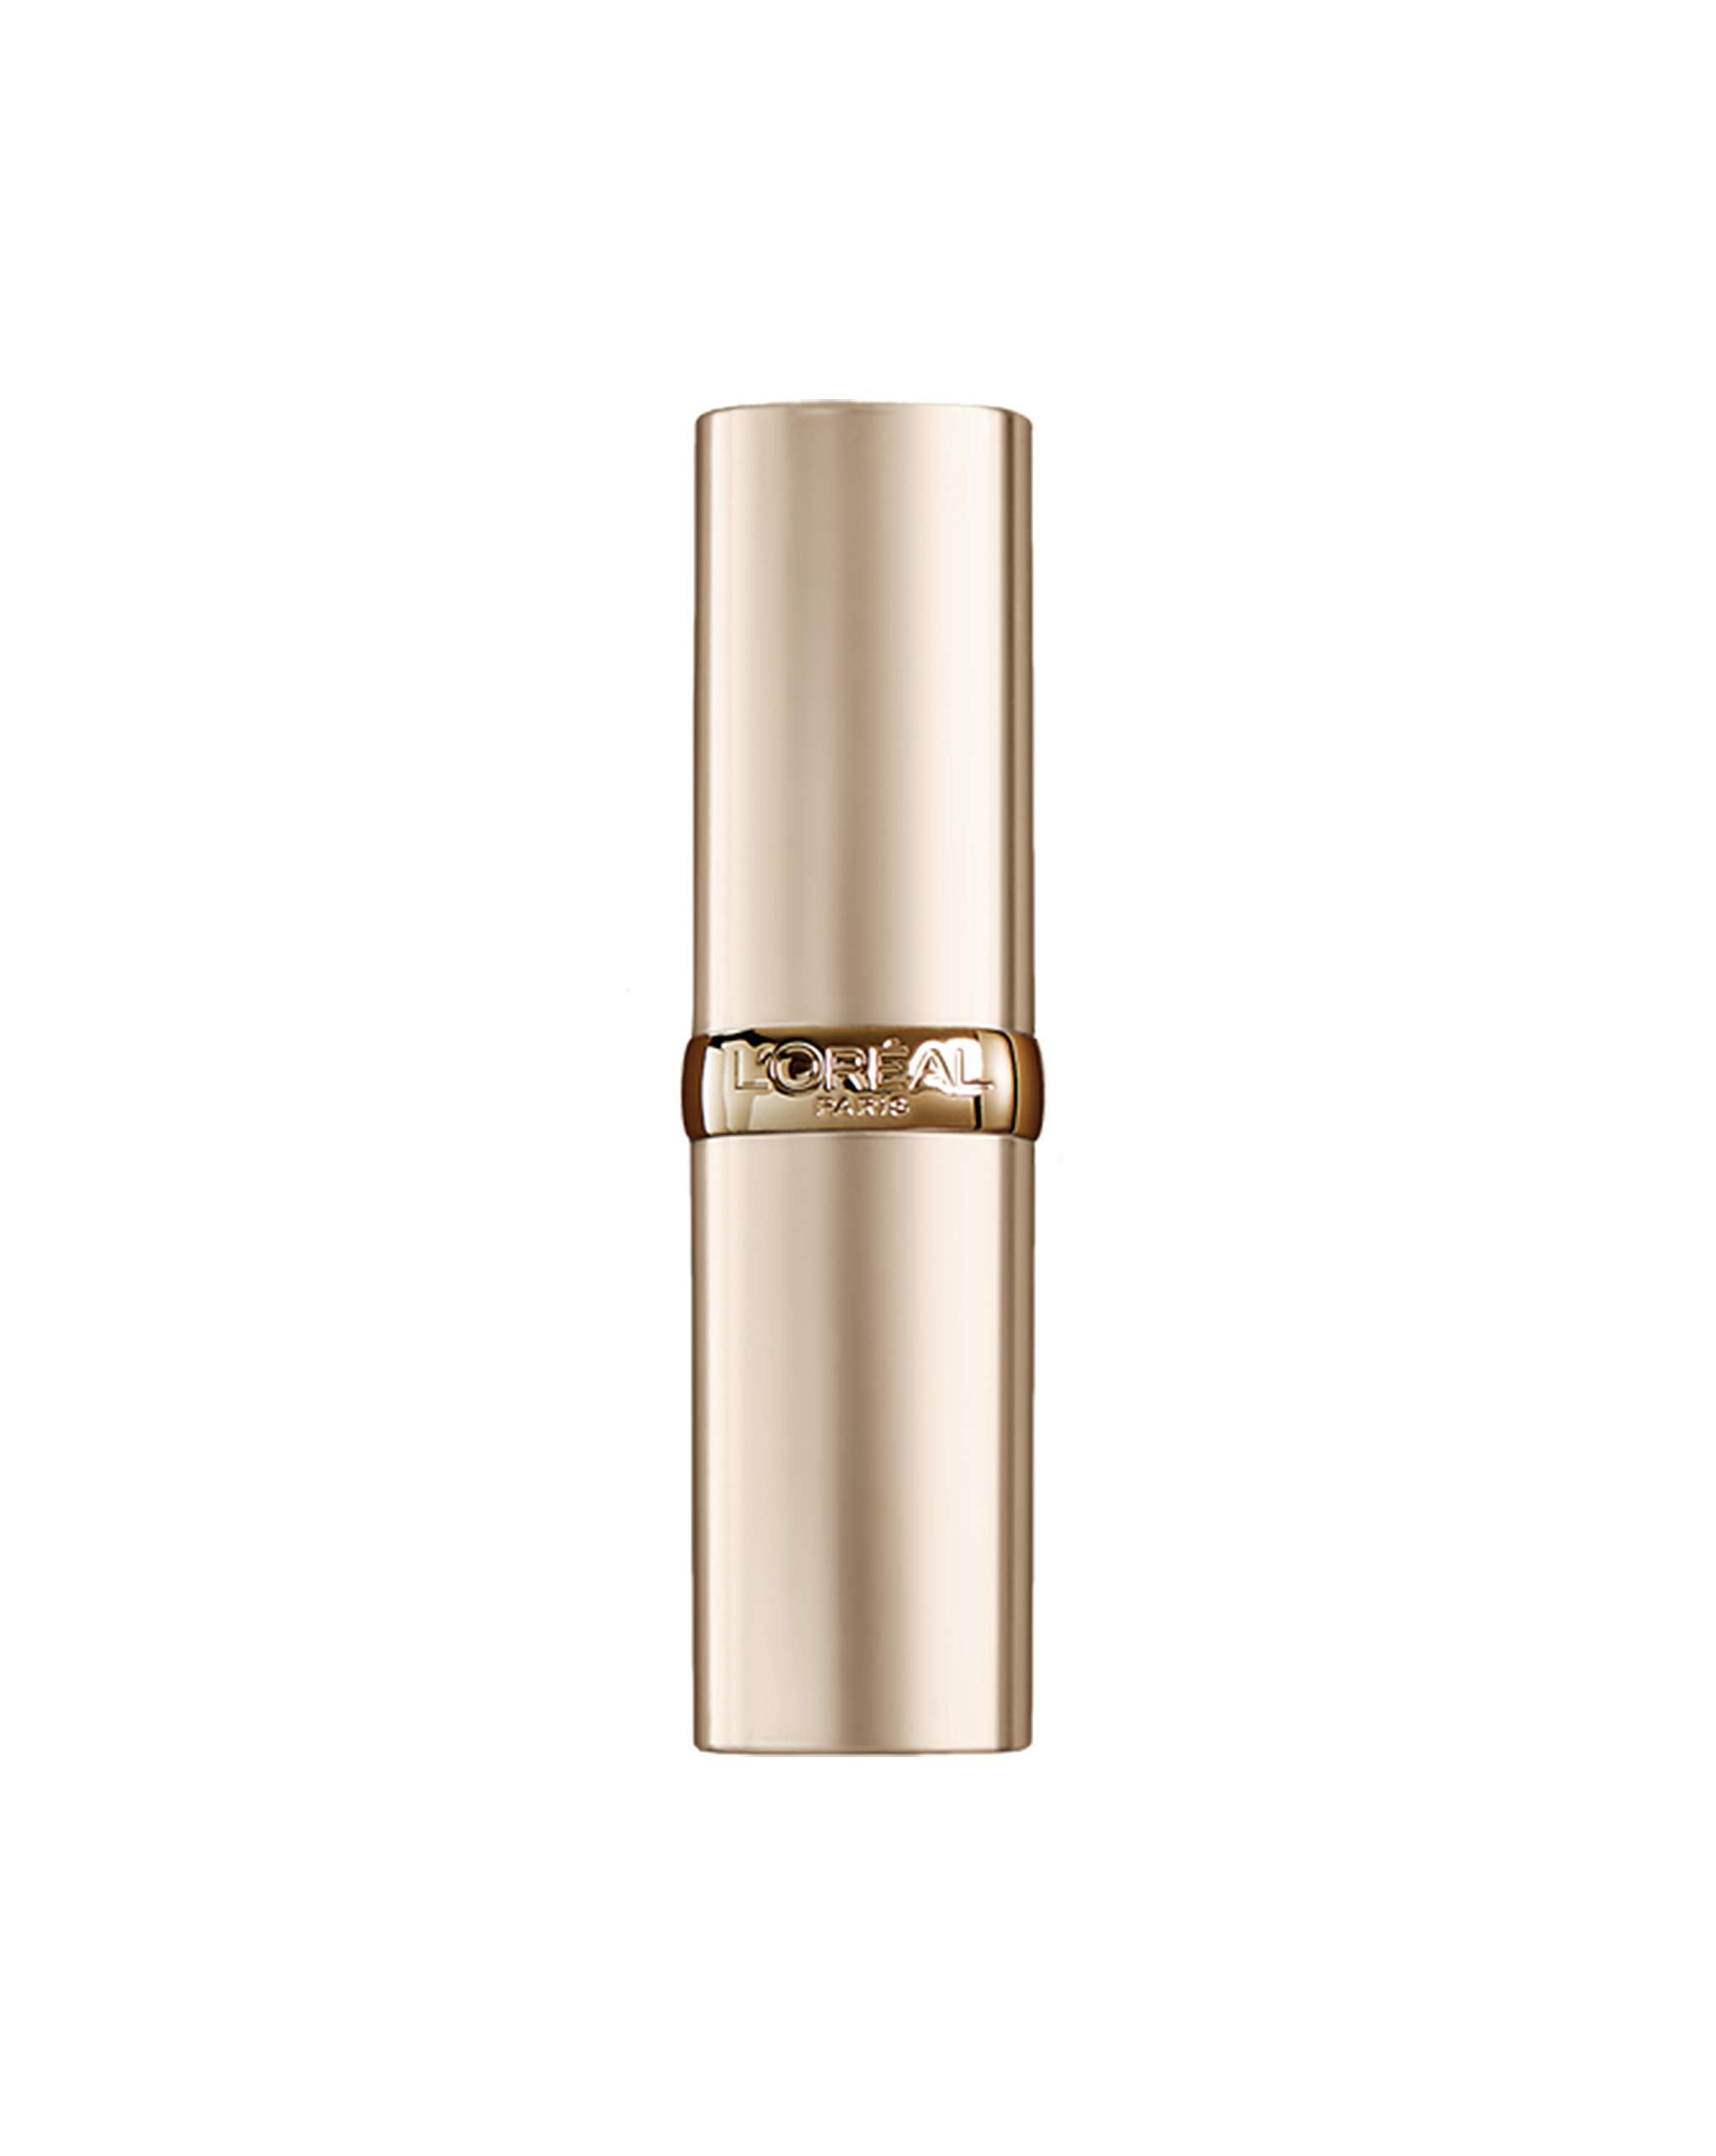 L'Oréal Paris Color Riche Barra labial de color ciruela 462 preliminar 24g